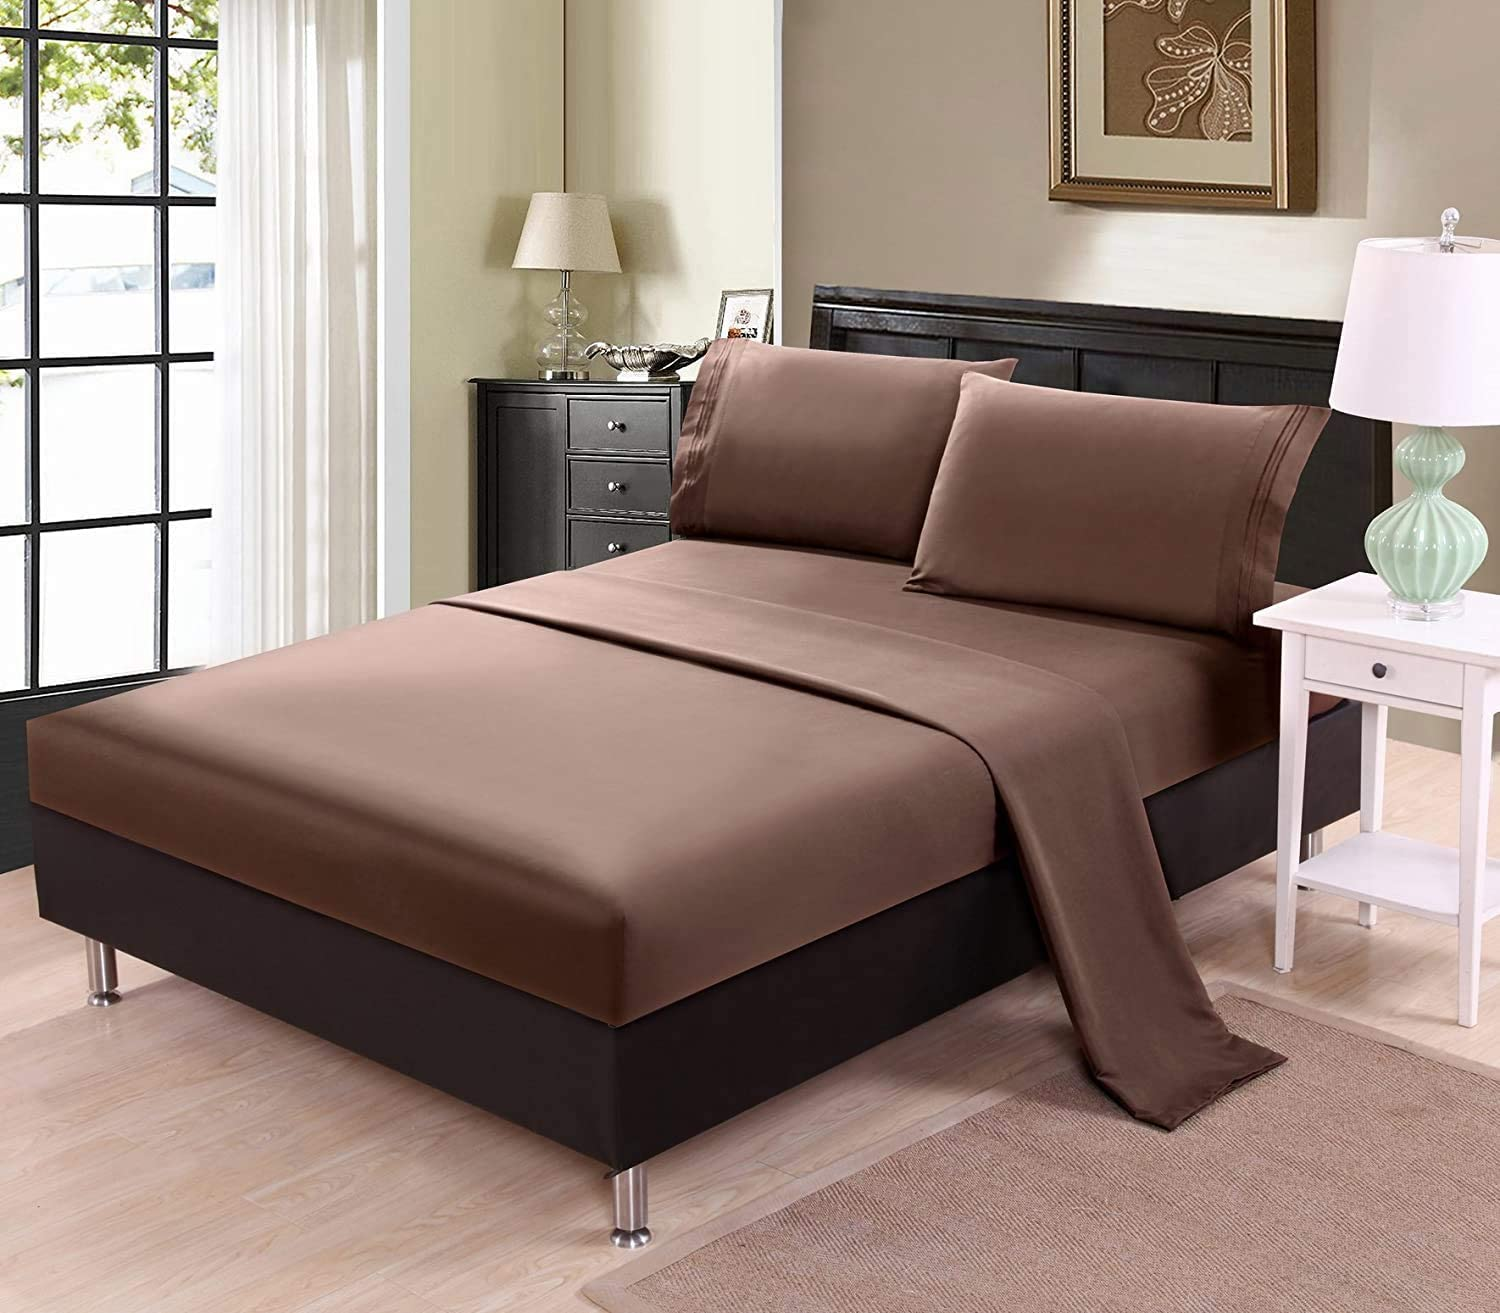 Cheap SALE Start Bedding Castle Luxurious Hotel Quality Fitted sale Egyptian 1 Cotton